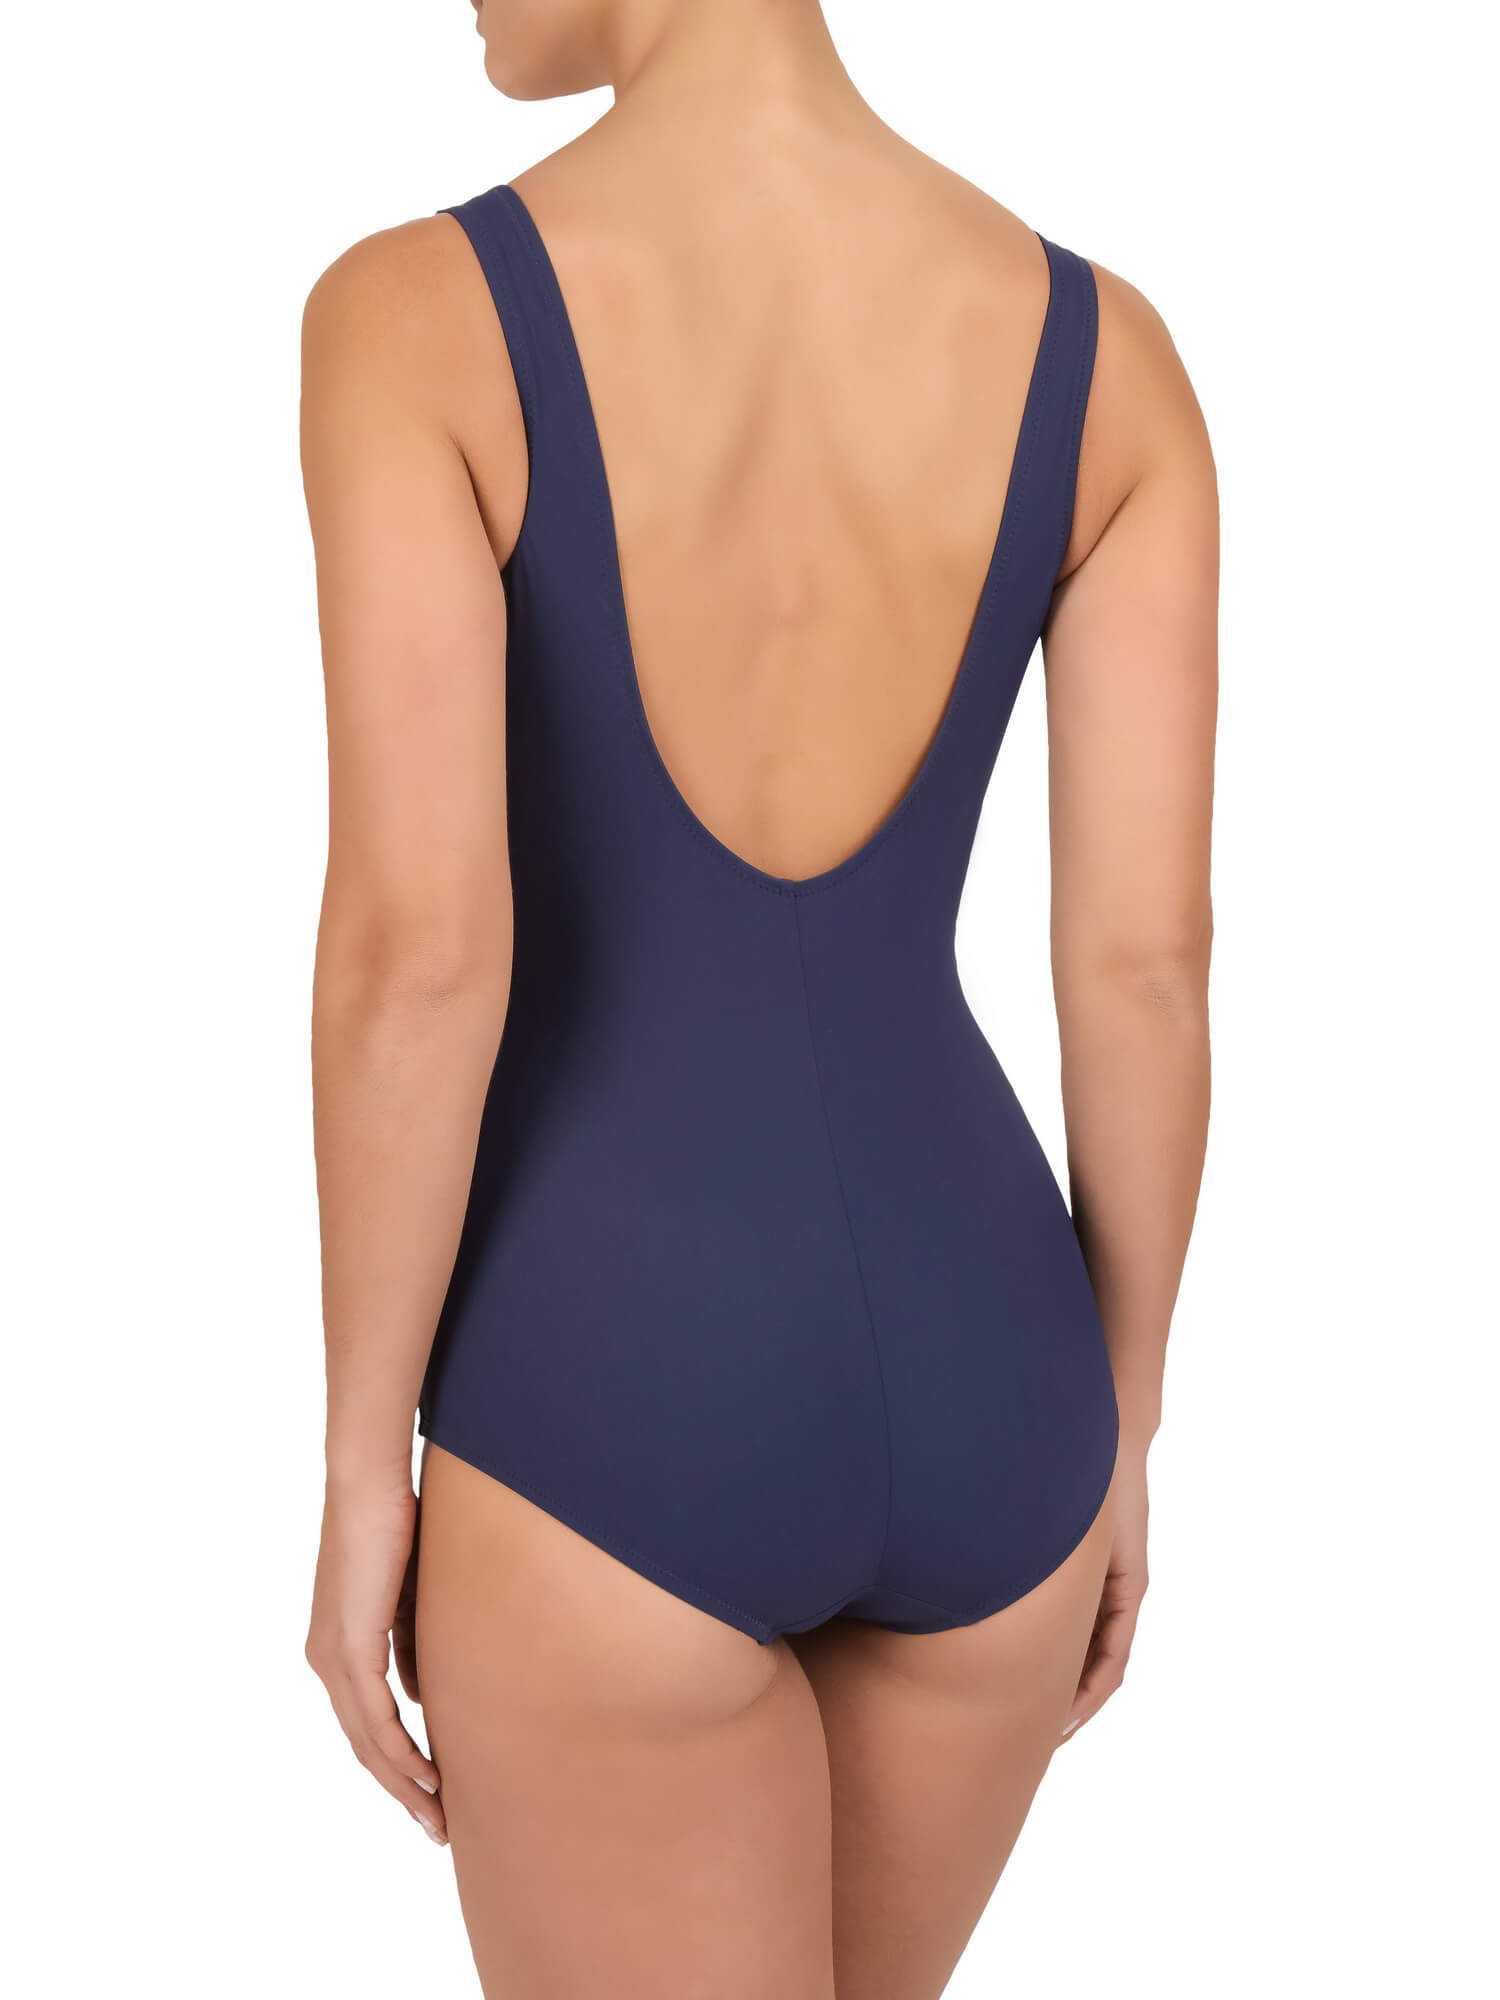 803ca3333b8 ... front · Felina One-piece swimsuit with inner support 5205202 CLASSIC  SHAPE back ...